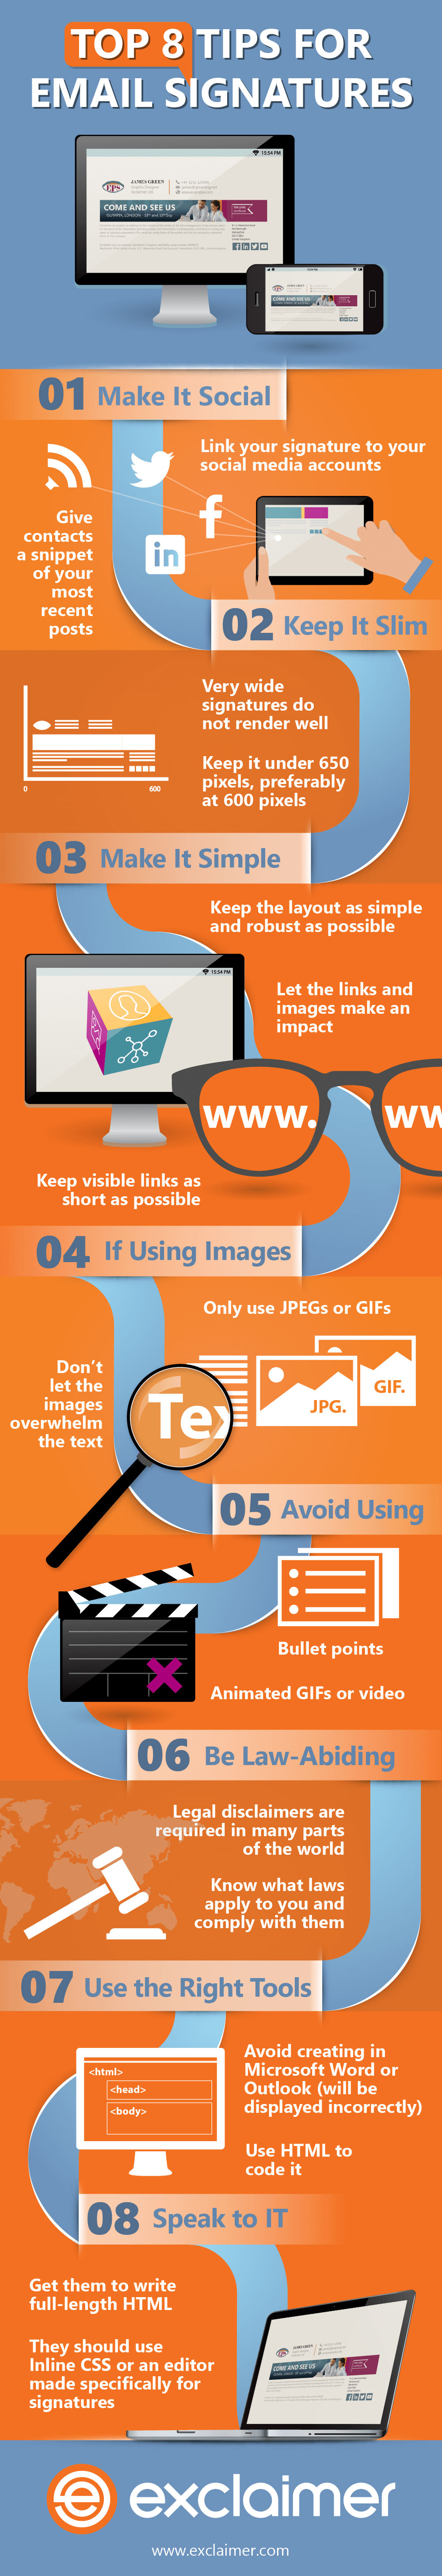 Infographic on top 8 professional email signatures tips